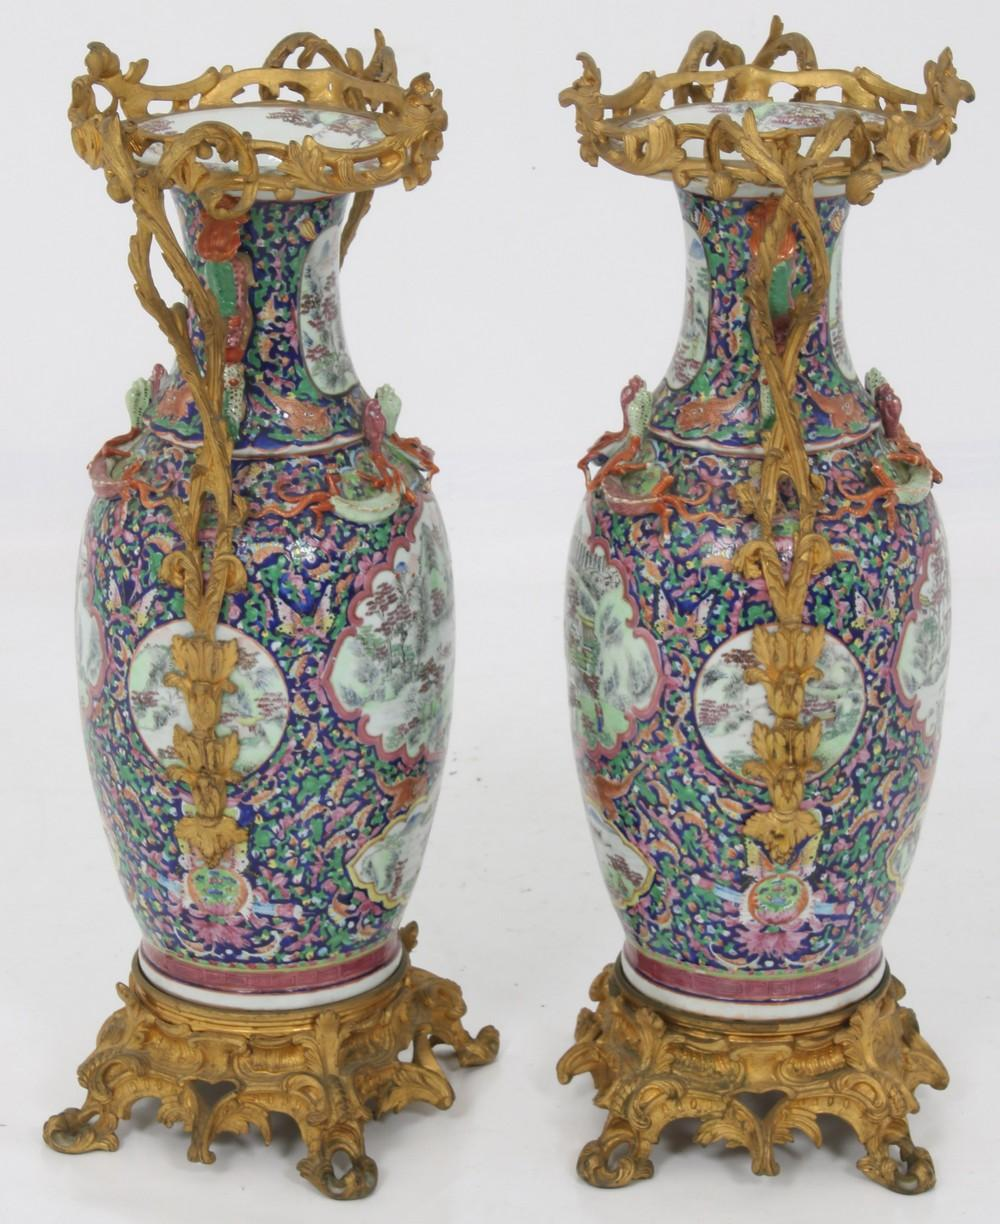 Pair of Large Chien Lung Porcelain & Bronze Vases